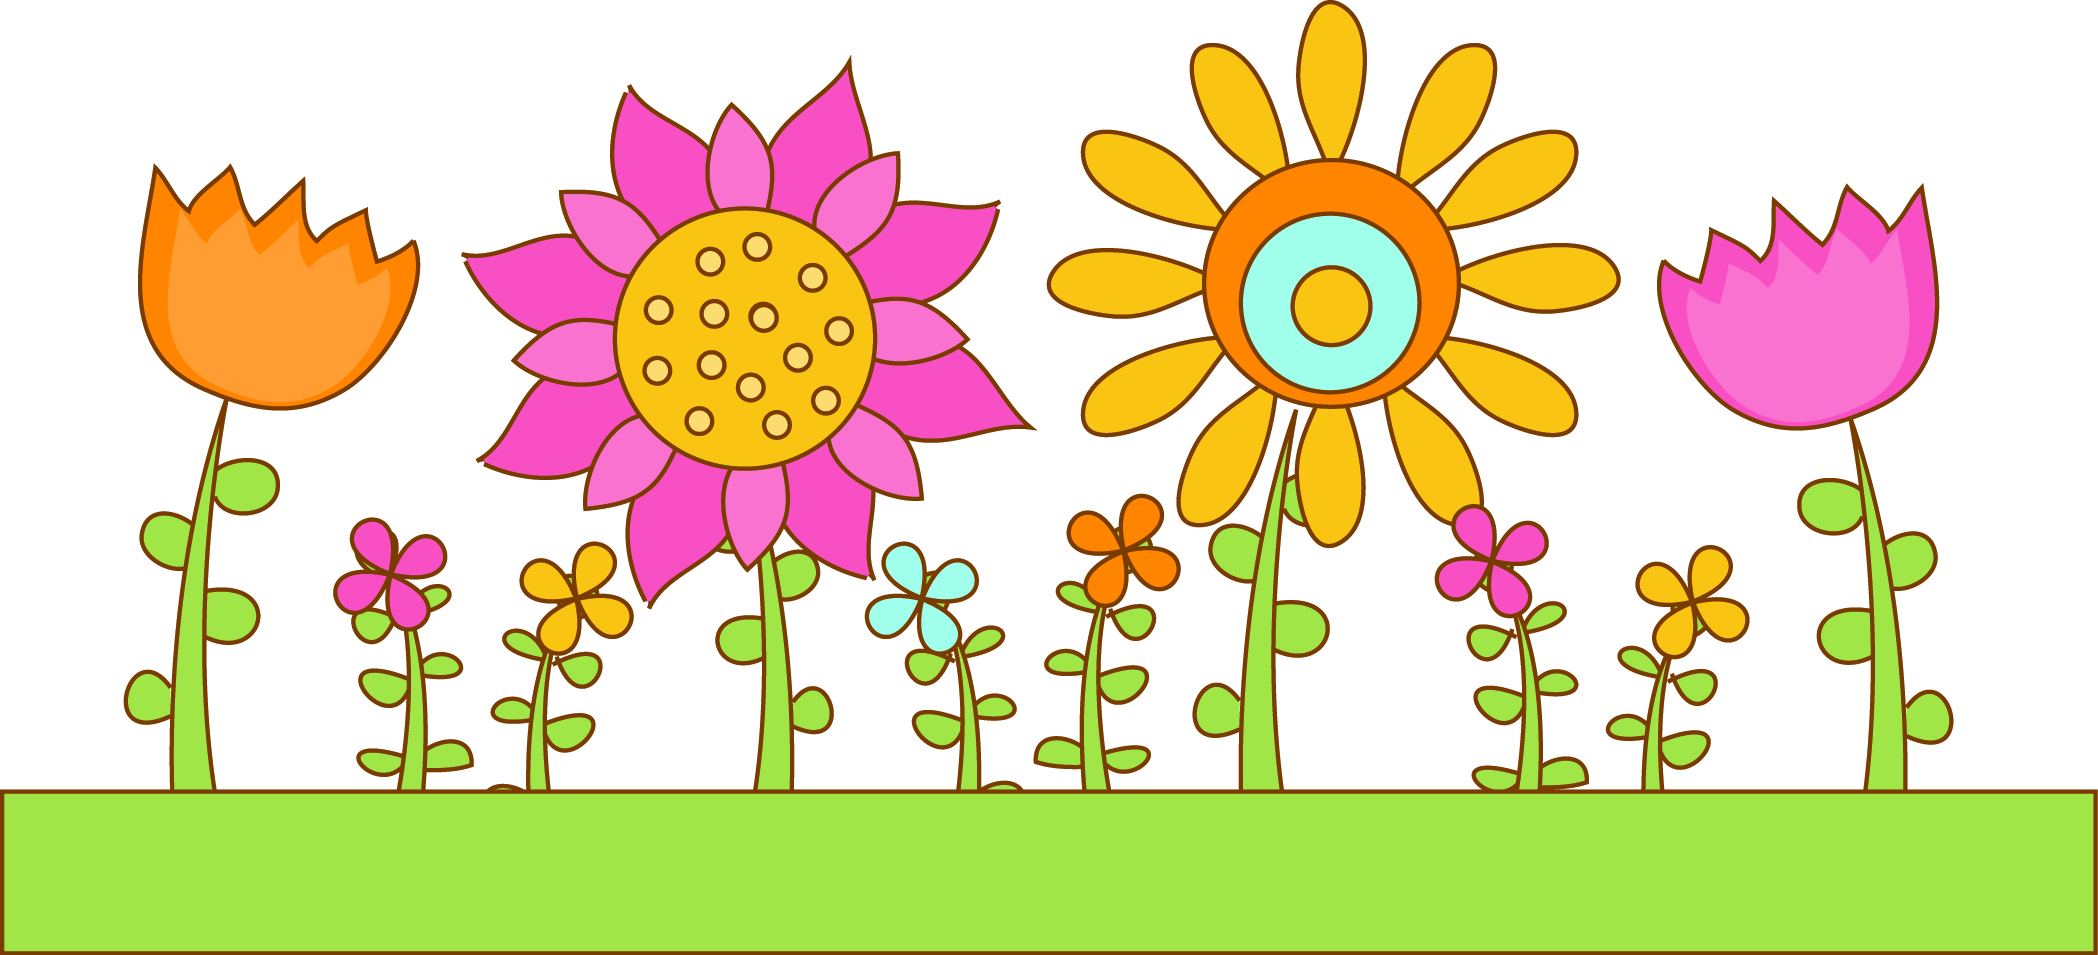 10 garden clipart preview flower garden cli hdclipartall 10 garden clipart preview flower